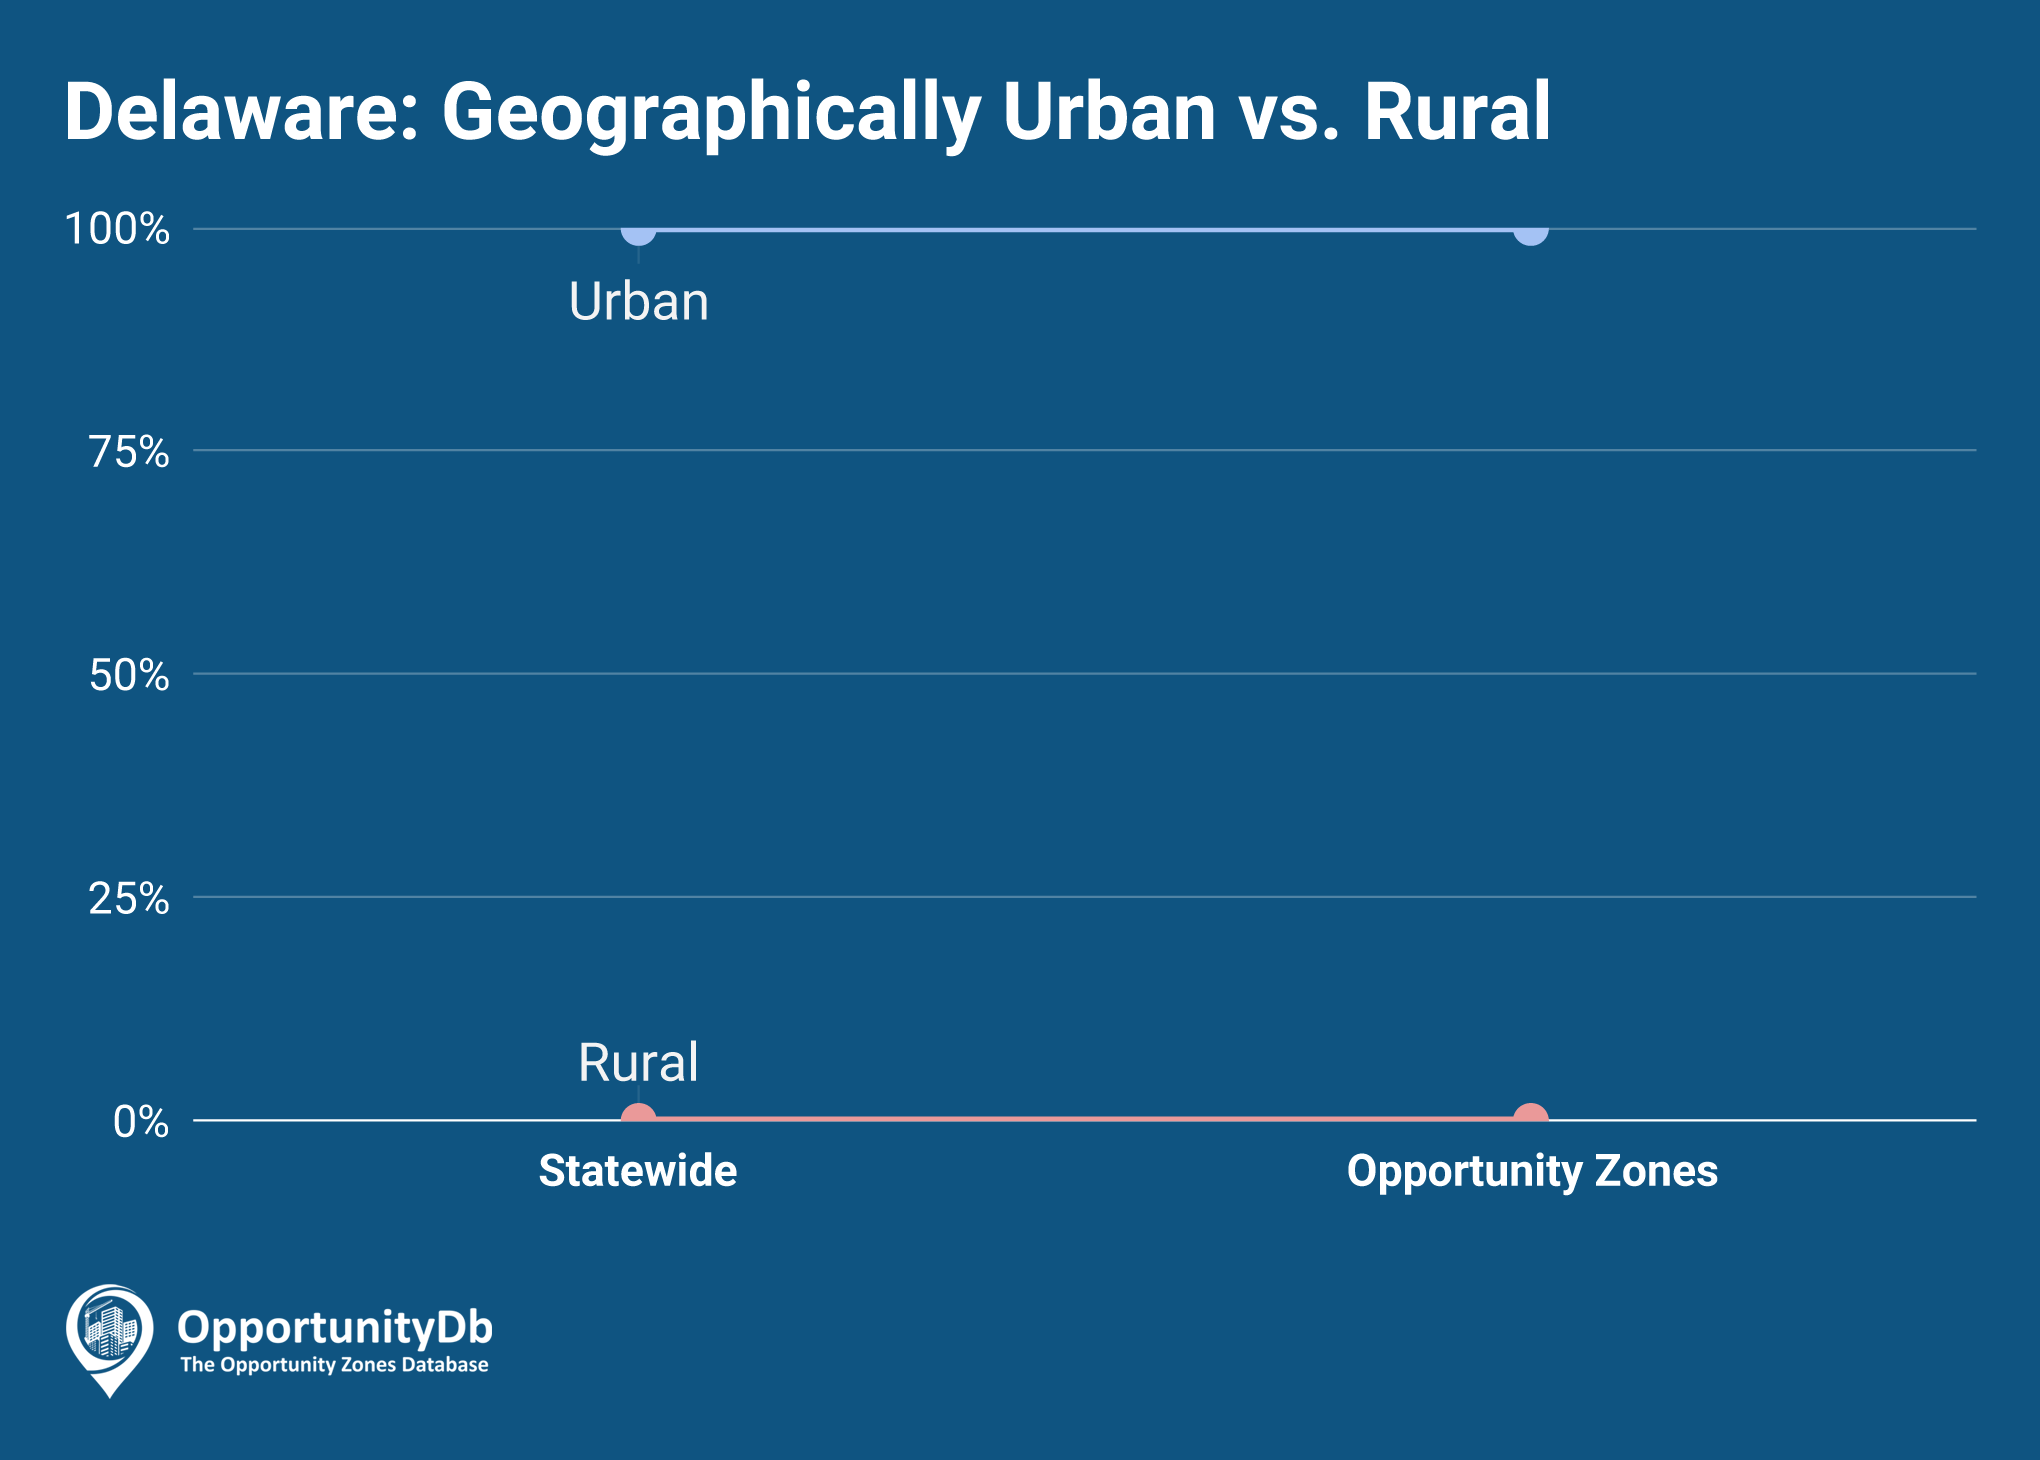 Urban vs. Rural in Delaware Opportunity Zones